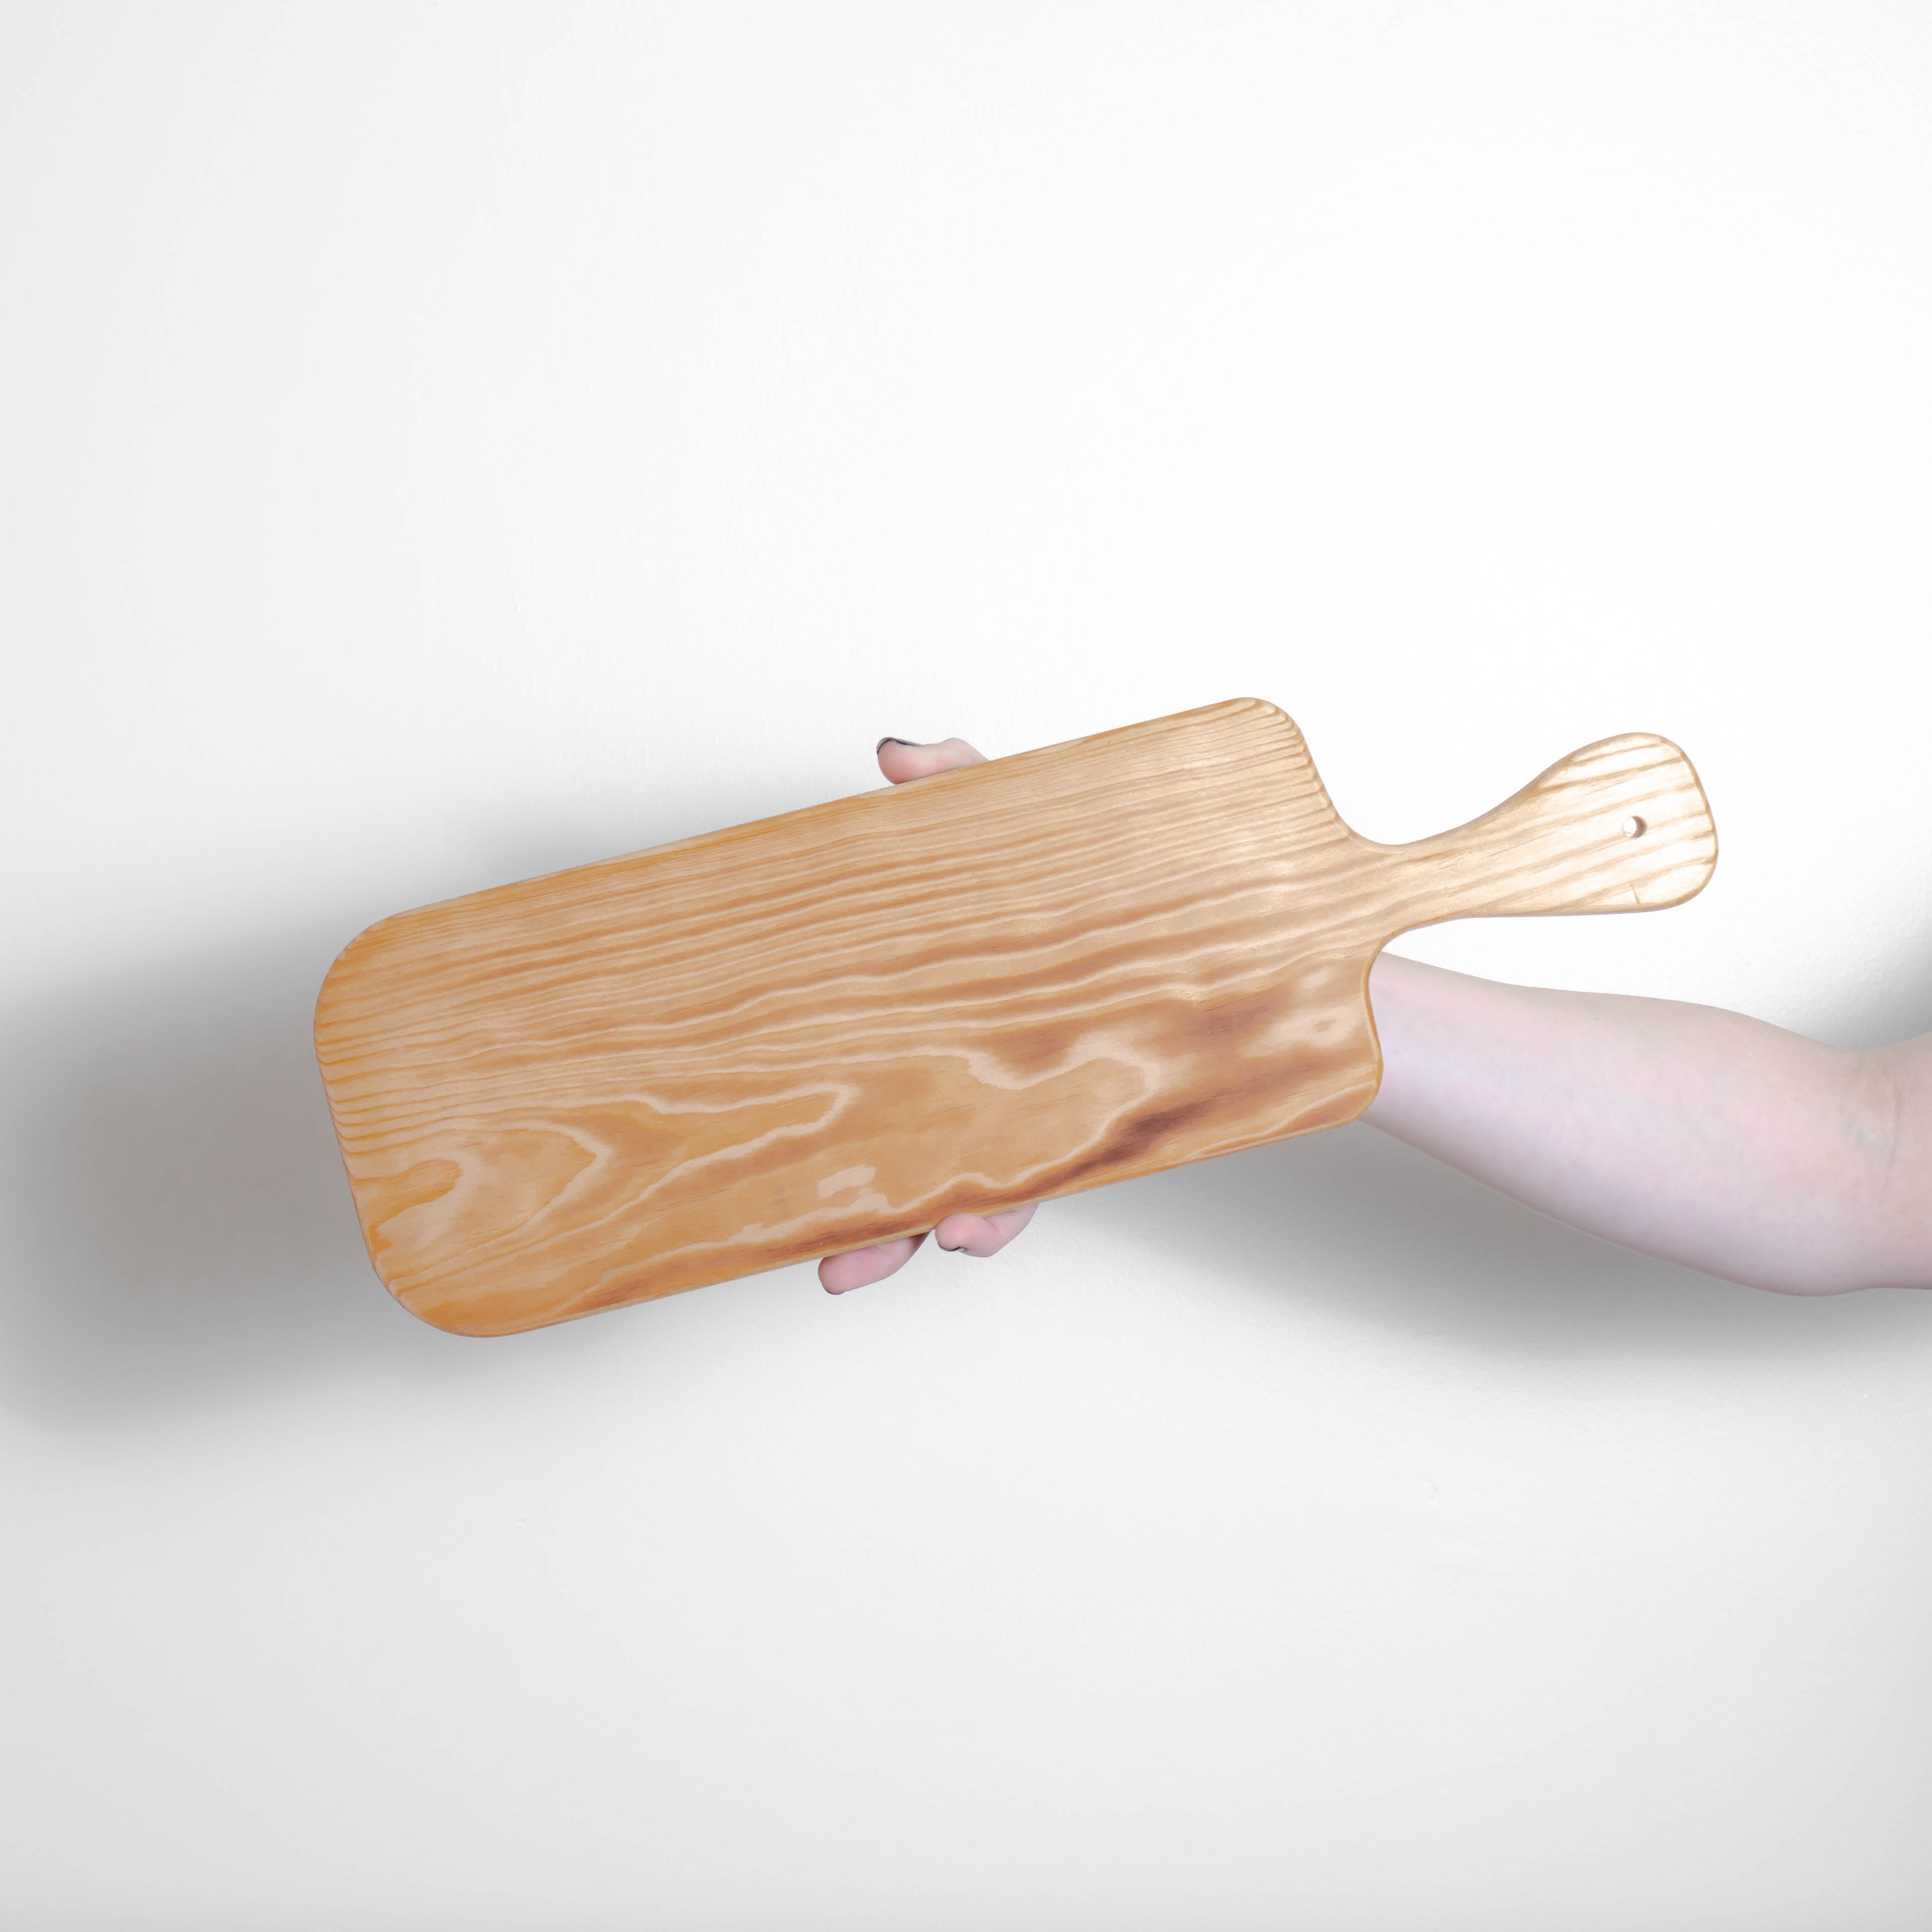 Antipasti/Food Wooden Serving Plank - Individual Board - Pine - 45 x 14cm